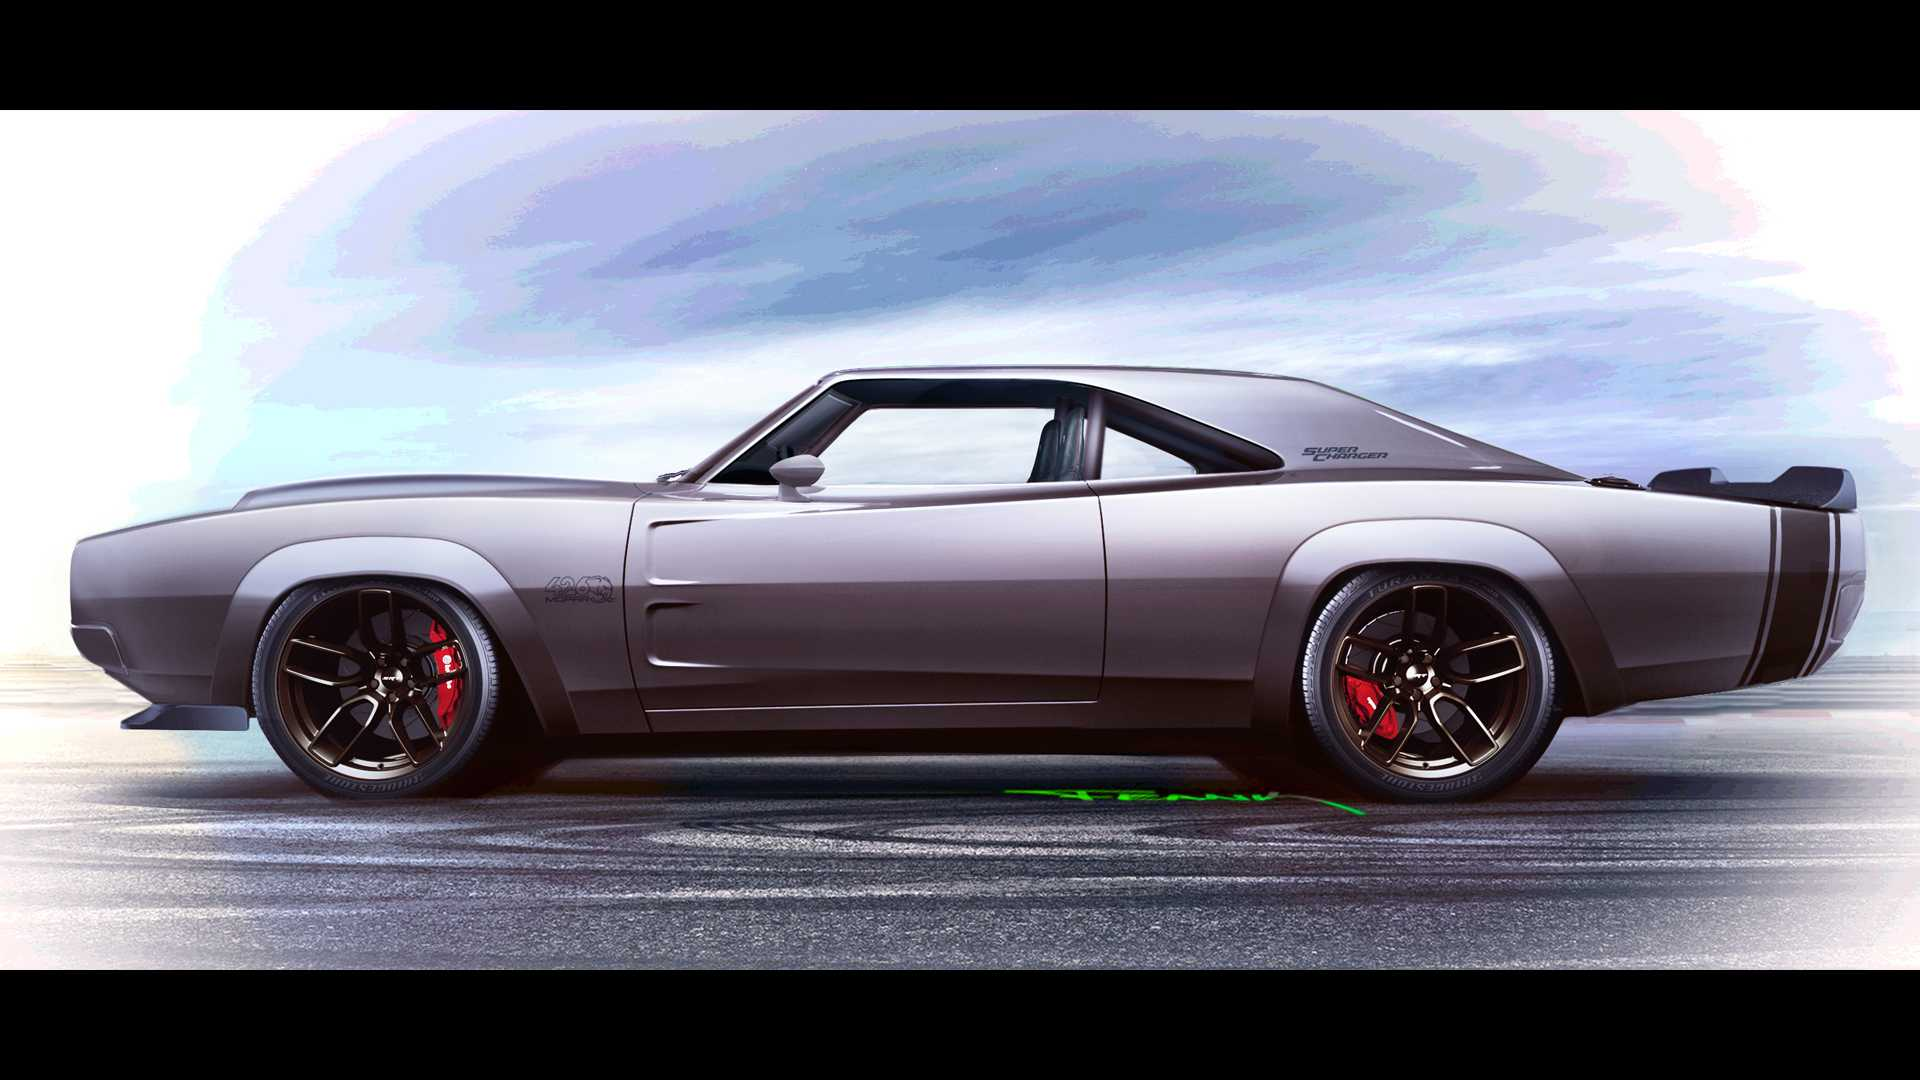 1968 Dodge Super Charger Debuts With 1 000 Hp Hellephant Crate